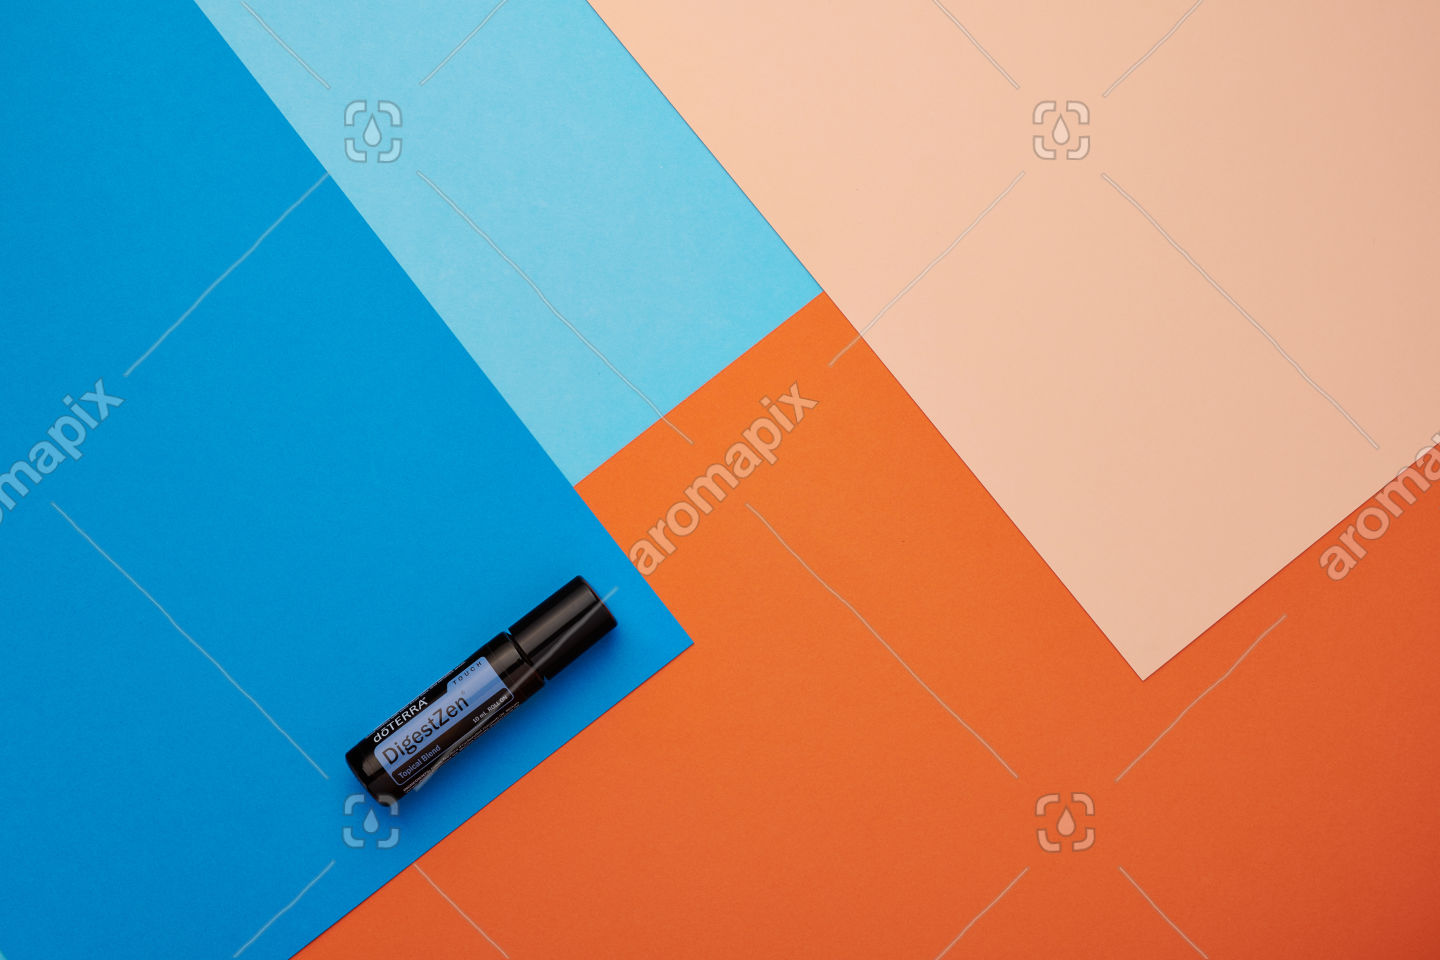 doTERRA DigestZen Touch on a blue and orange background